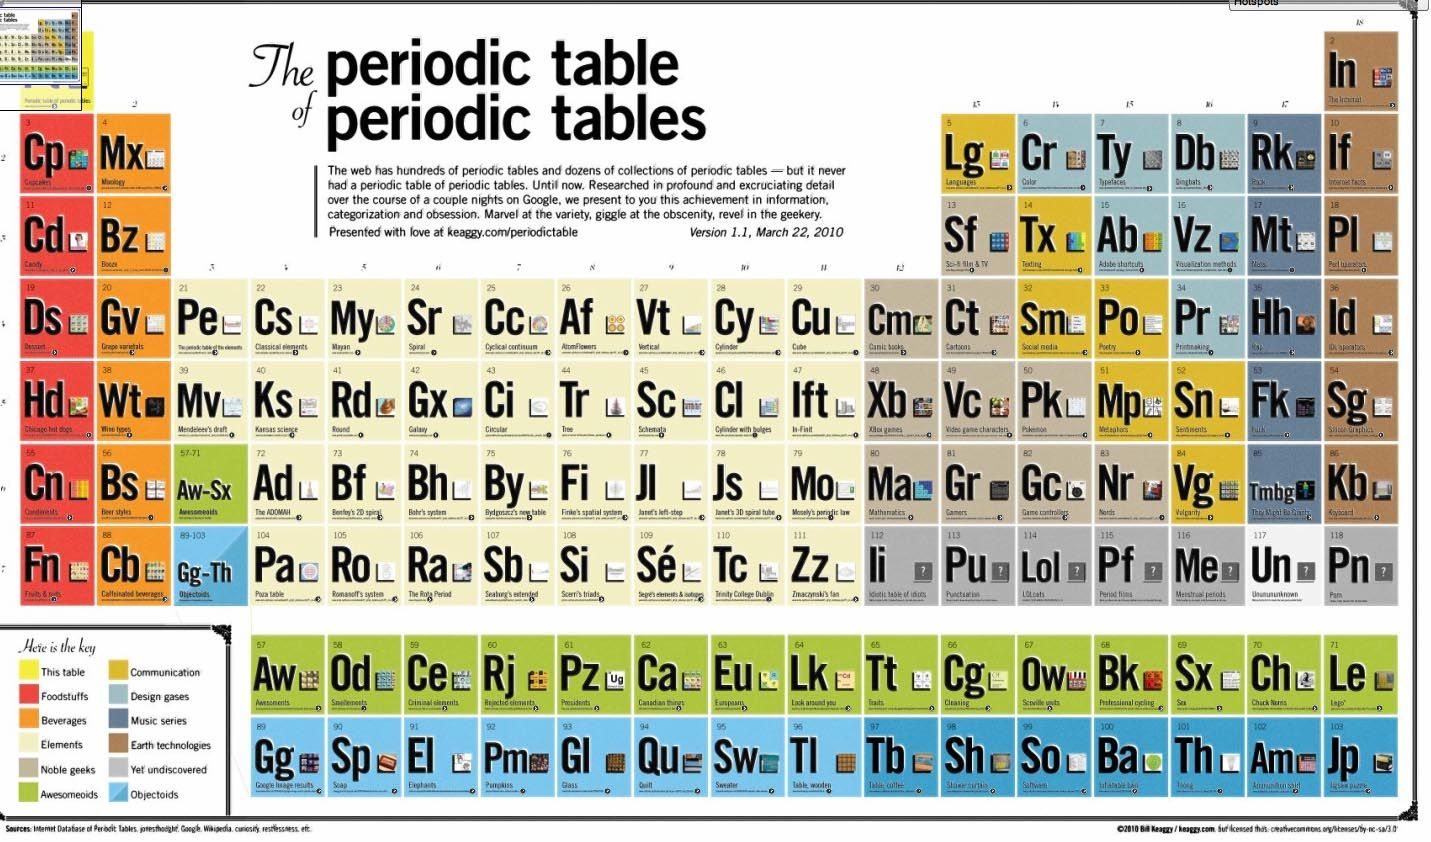 The periodic table of periodic tables - even for Pinterest this is ...